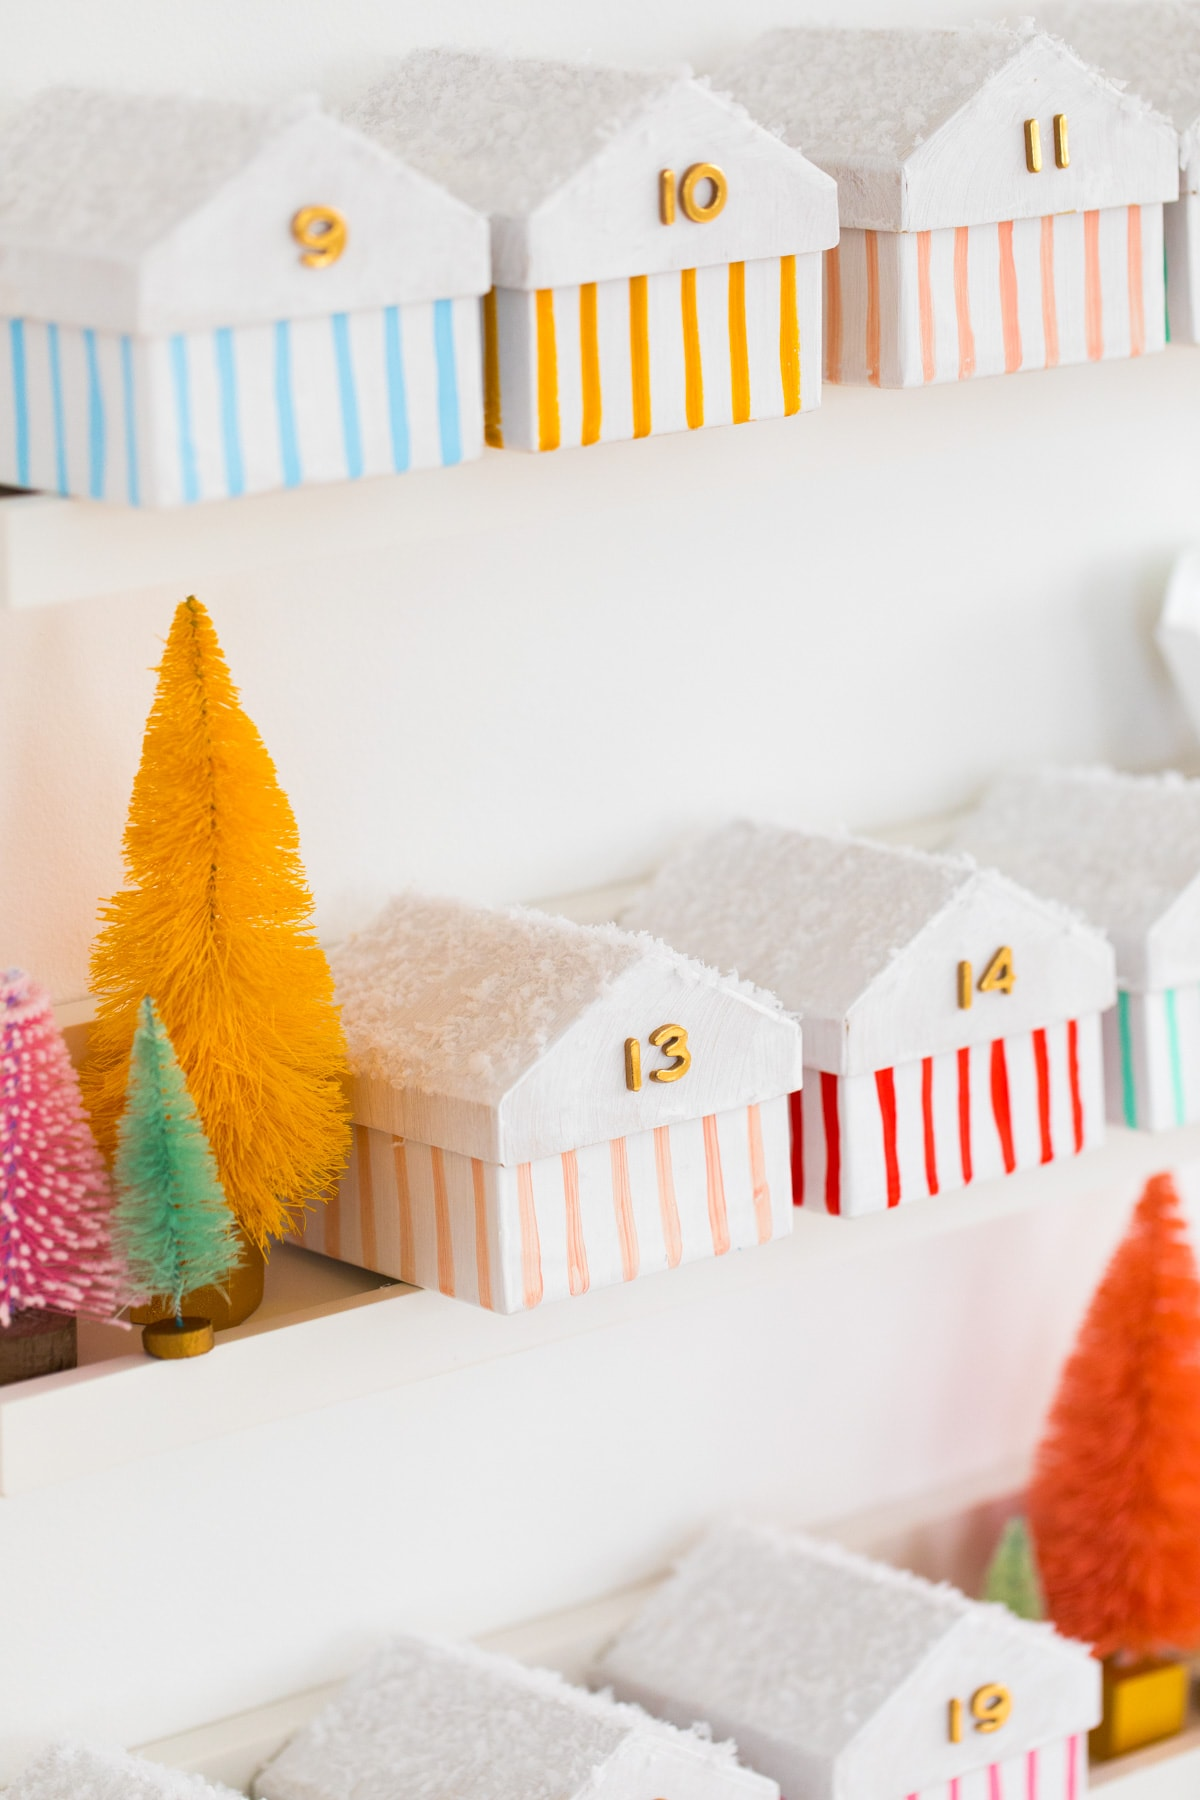 striped Christmas houses! Colorful Houses DIY Advent Calendar by top Houston lifesyle blogger Ashley Rose of Sugar and Cloth #diy #christmas #advent #holiday #decor #idea #howto #kids #crafts